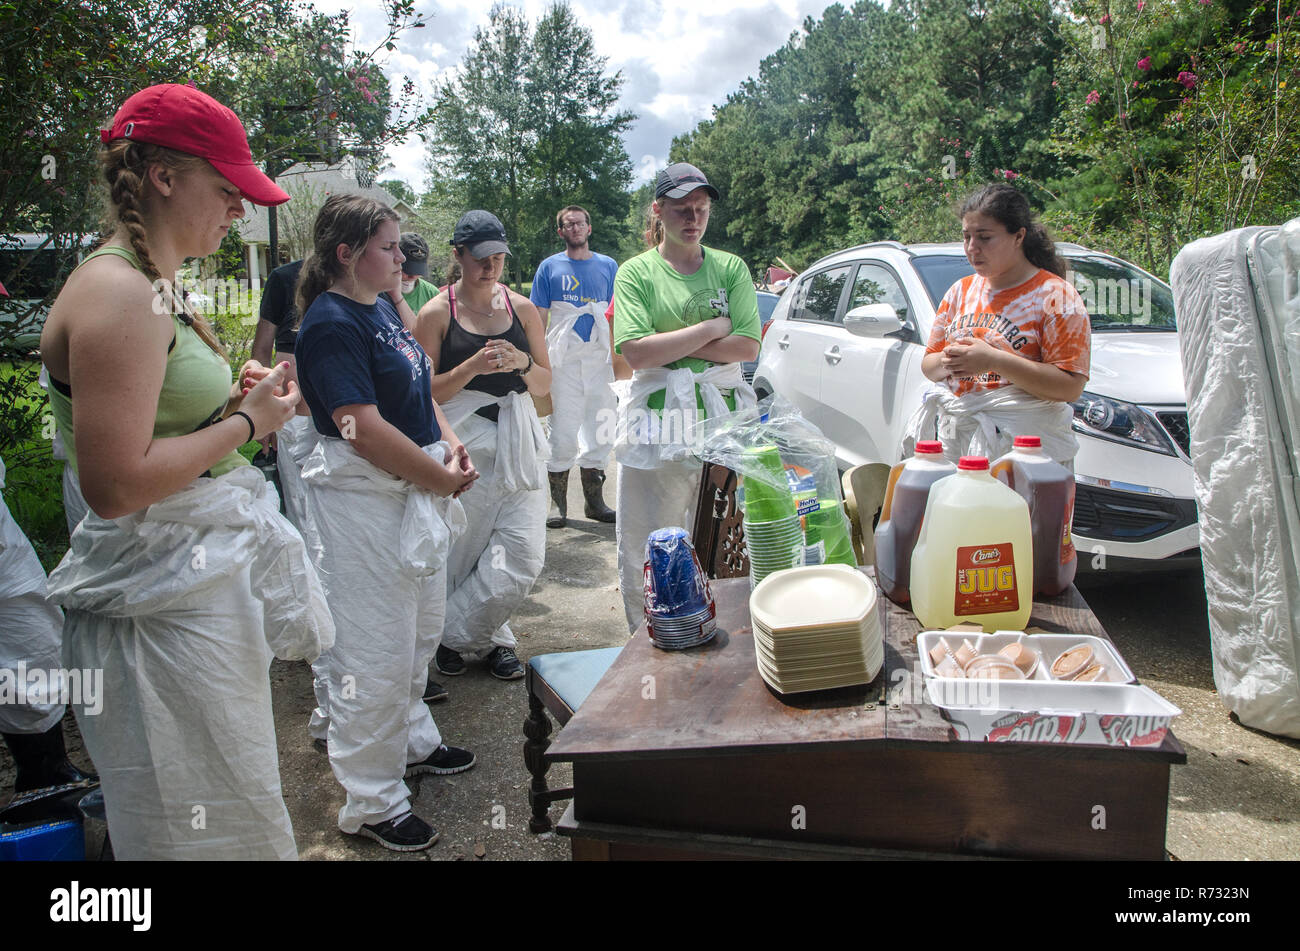 Student volunteers from Louisiana State University's Baptist Collegiate Ministry pray before eating lunch after a flood in Denham Springs, Louisiana. - Stock Image